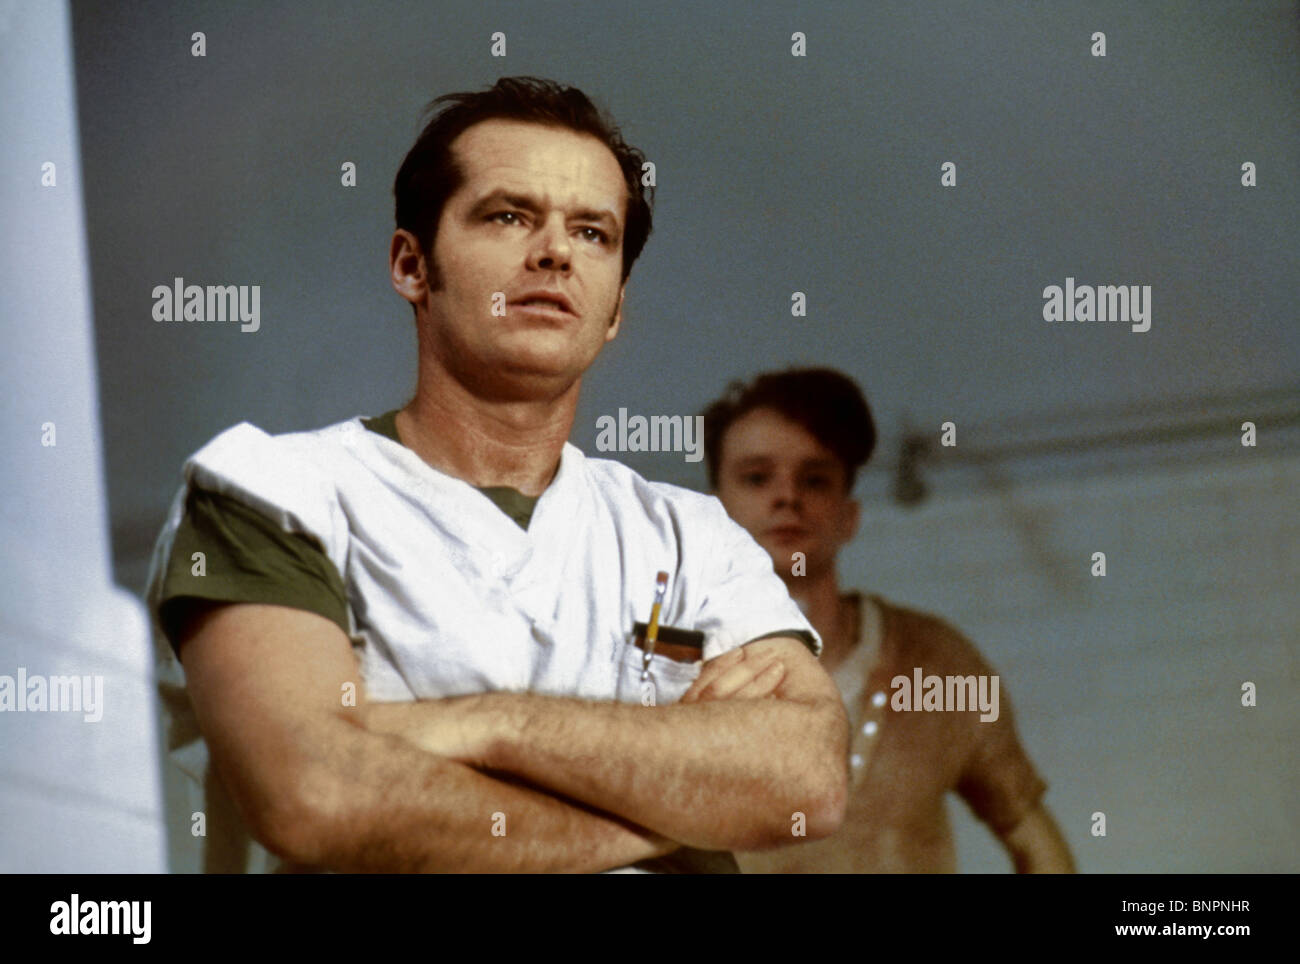 JACK NICHOLSON AND BRAD DOURIF ONE FLEW OVER THE CUCKOO'S NEST (1975) - Stock Image